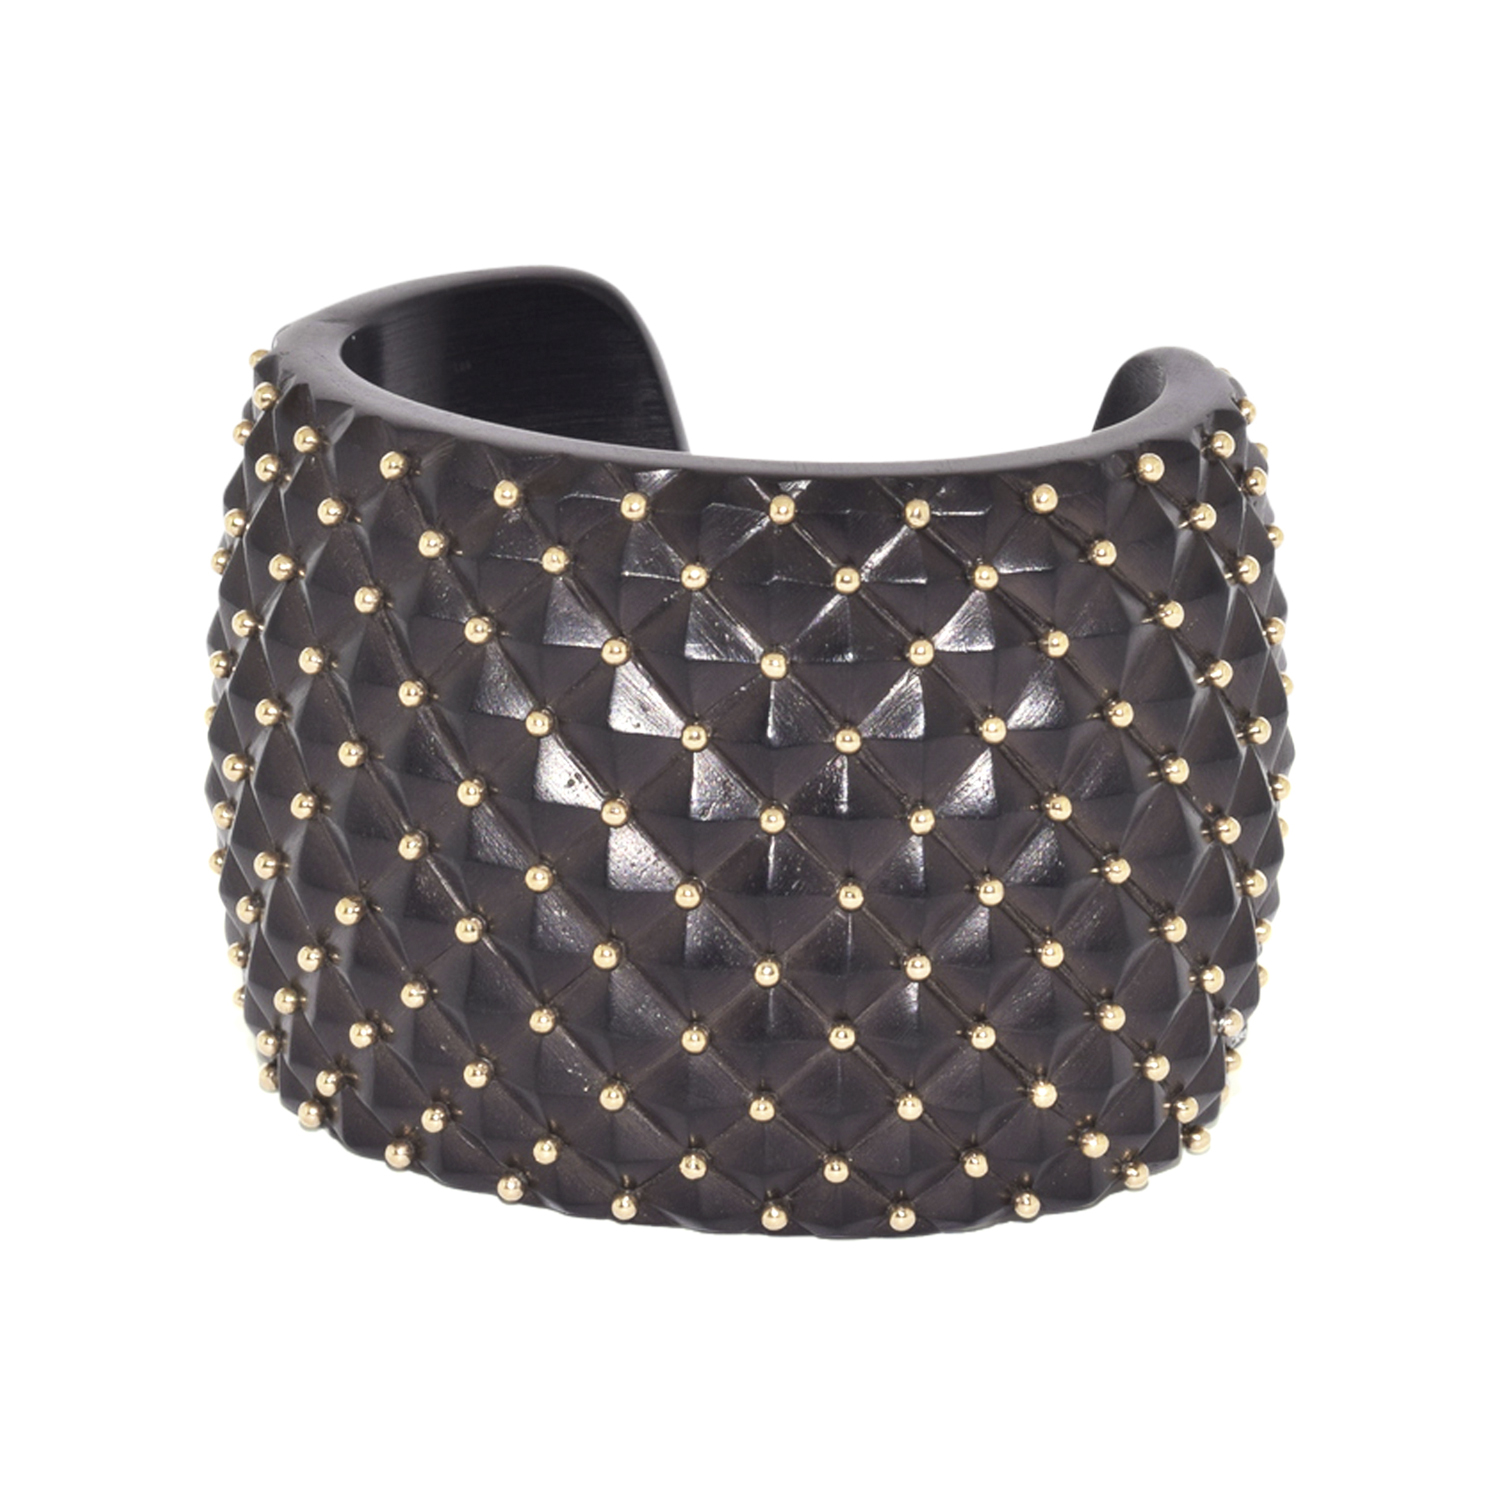 Ebony and Yellow Gold Studded Quilted Cuff by Antonia Miletto, Serial FL39369